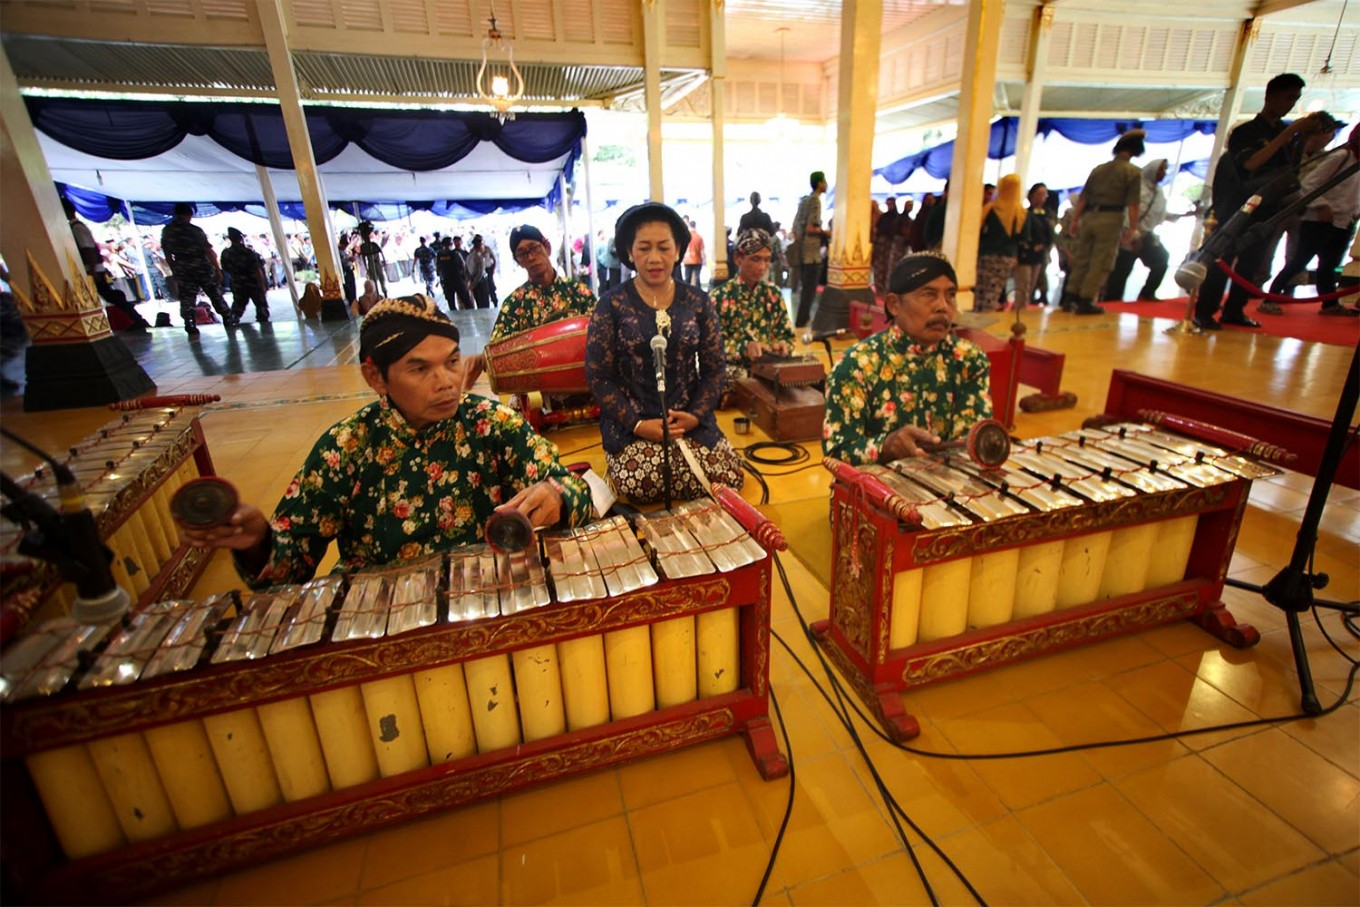 Gamelan is played during the open house. JP/Boy T. Harjanto